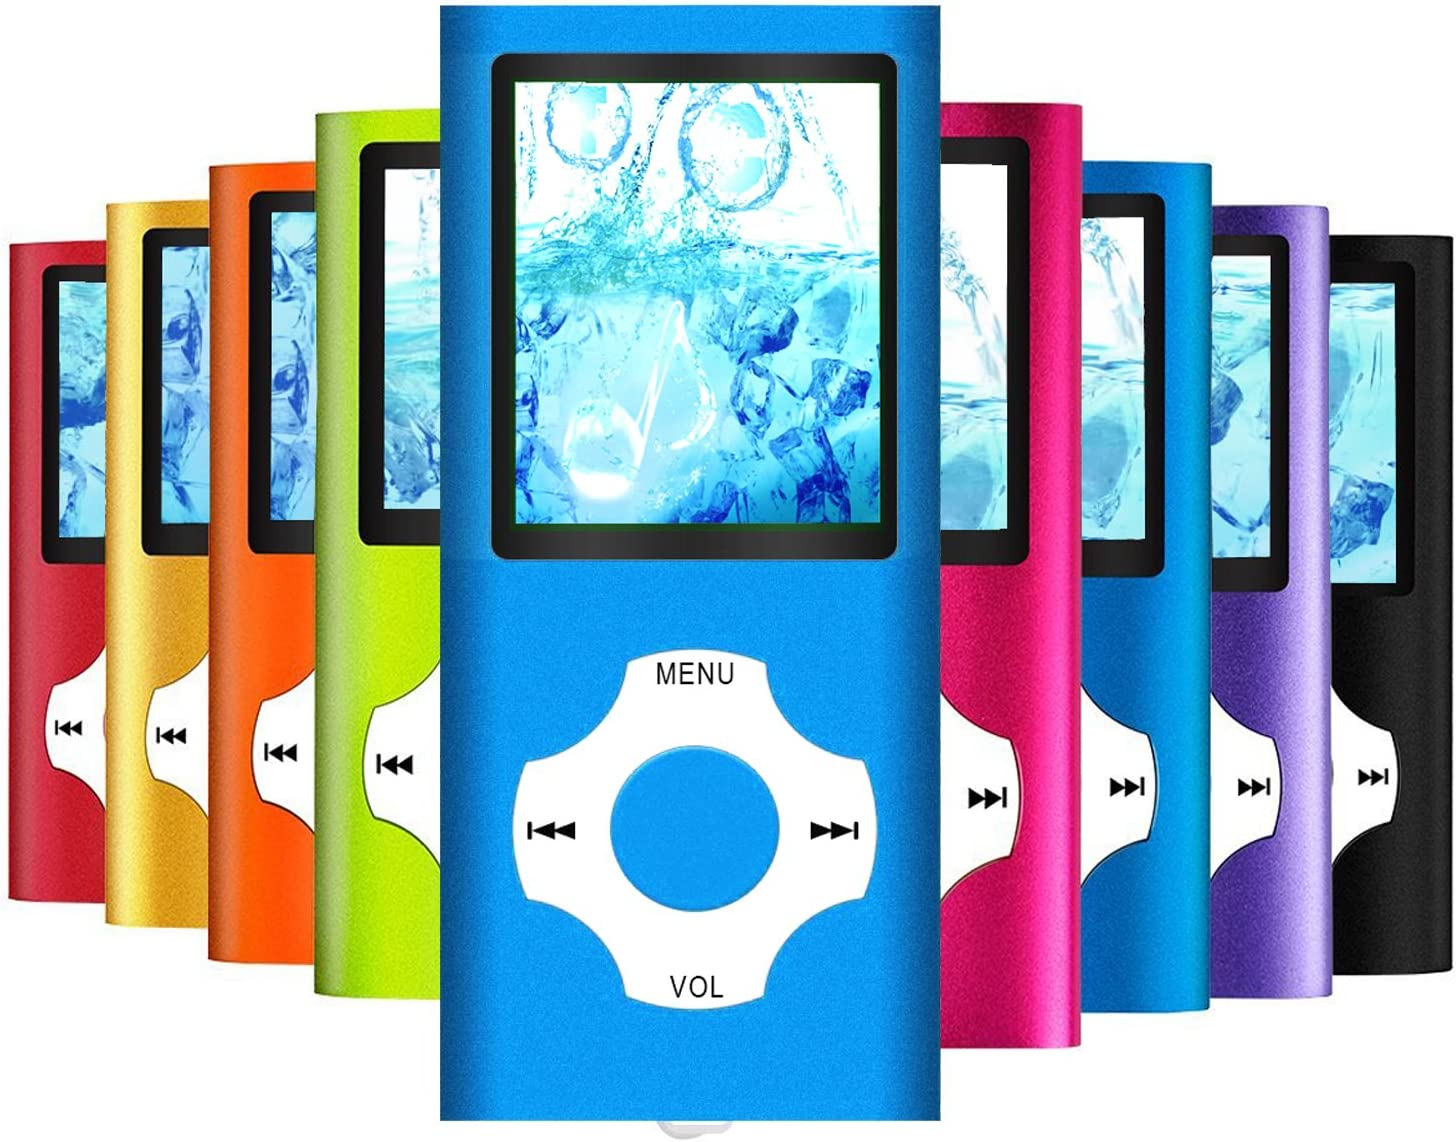 MP3 Player MP4 Player Hotechs MP3 Music Player with 32GB Memory SD Card Slim Classic Digital LCD 1.82 Screen Mini USB Port with FM Radio Voice Record